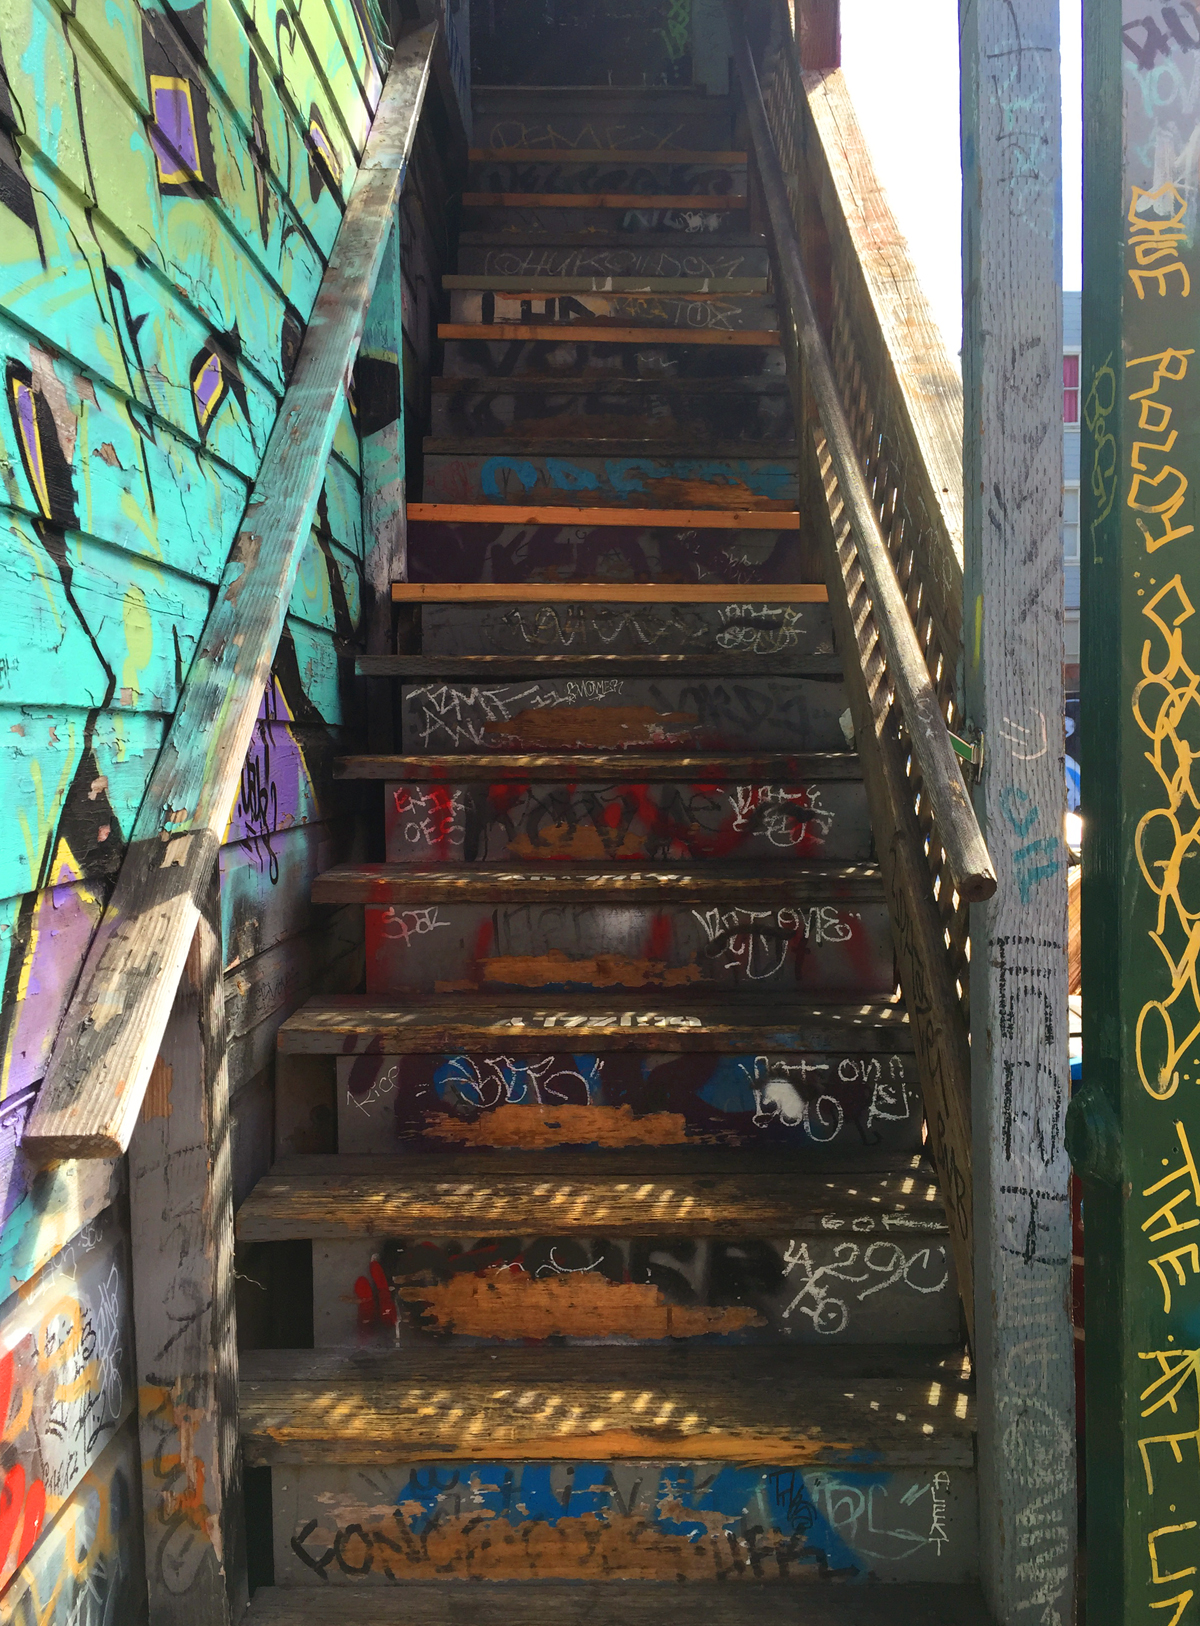 Stairway to 7 Haight-Ashbury, San Francisco  © Jud Burgess 2015